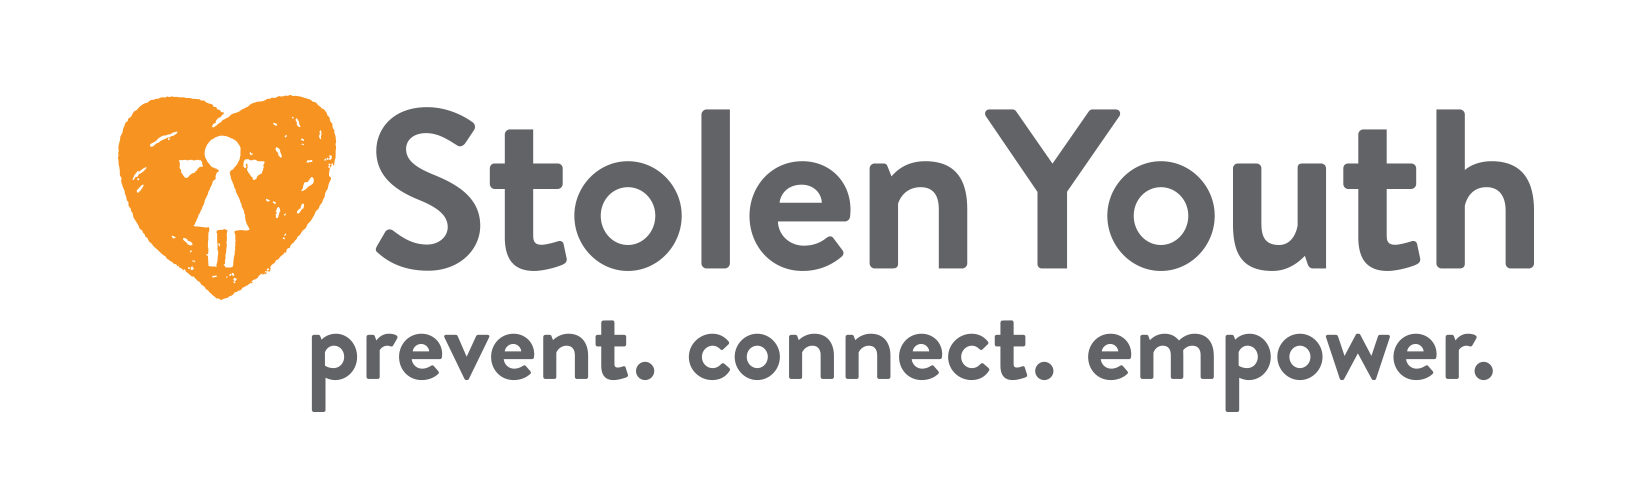 Amazon partners with StolenYouth, a Seattle-based organization with the mission to end child sex trafficking in the state of Washington through prevention, connecting trafficked youth to resources and services, and empowering survivors along their path to recovery and a promising future. We support StolenYouth by providing both financial support and goods donations.